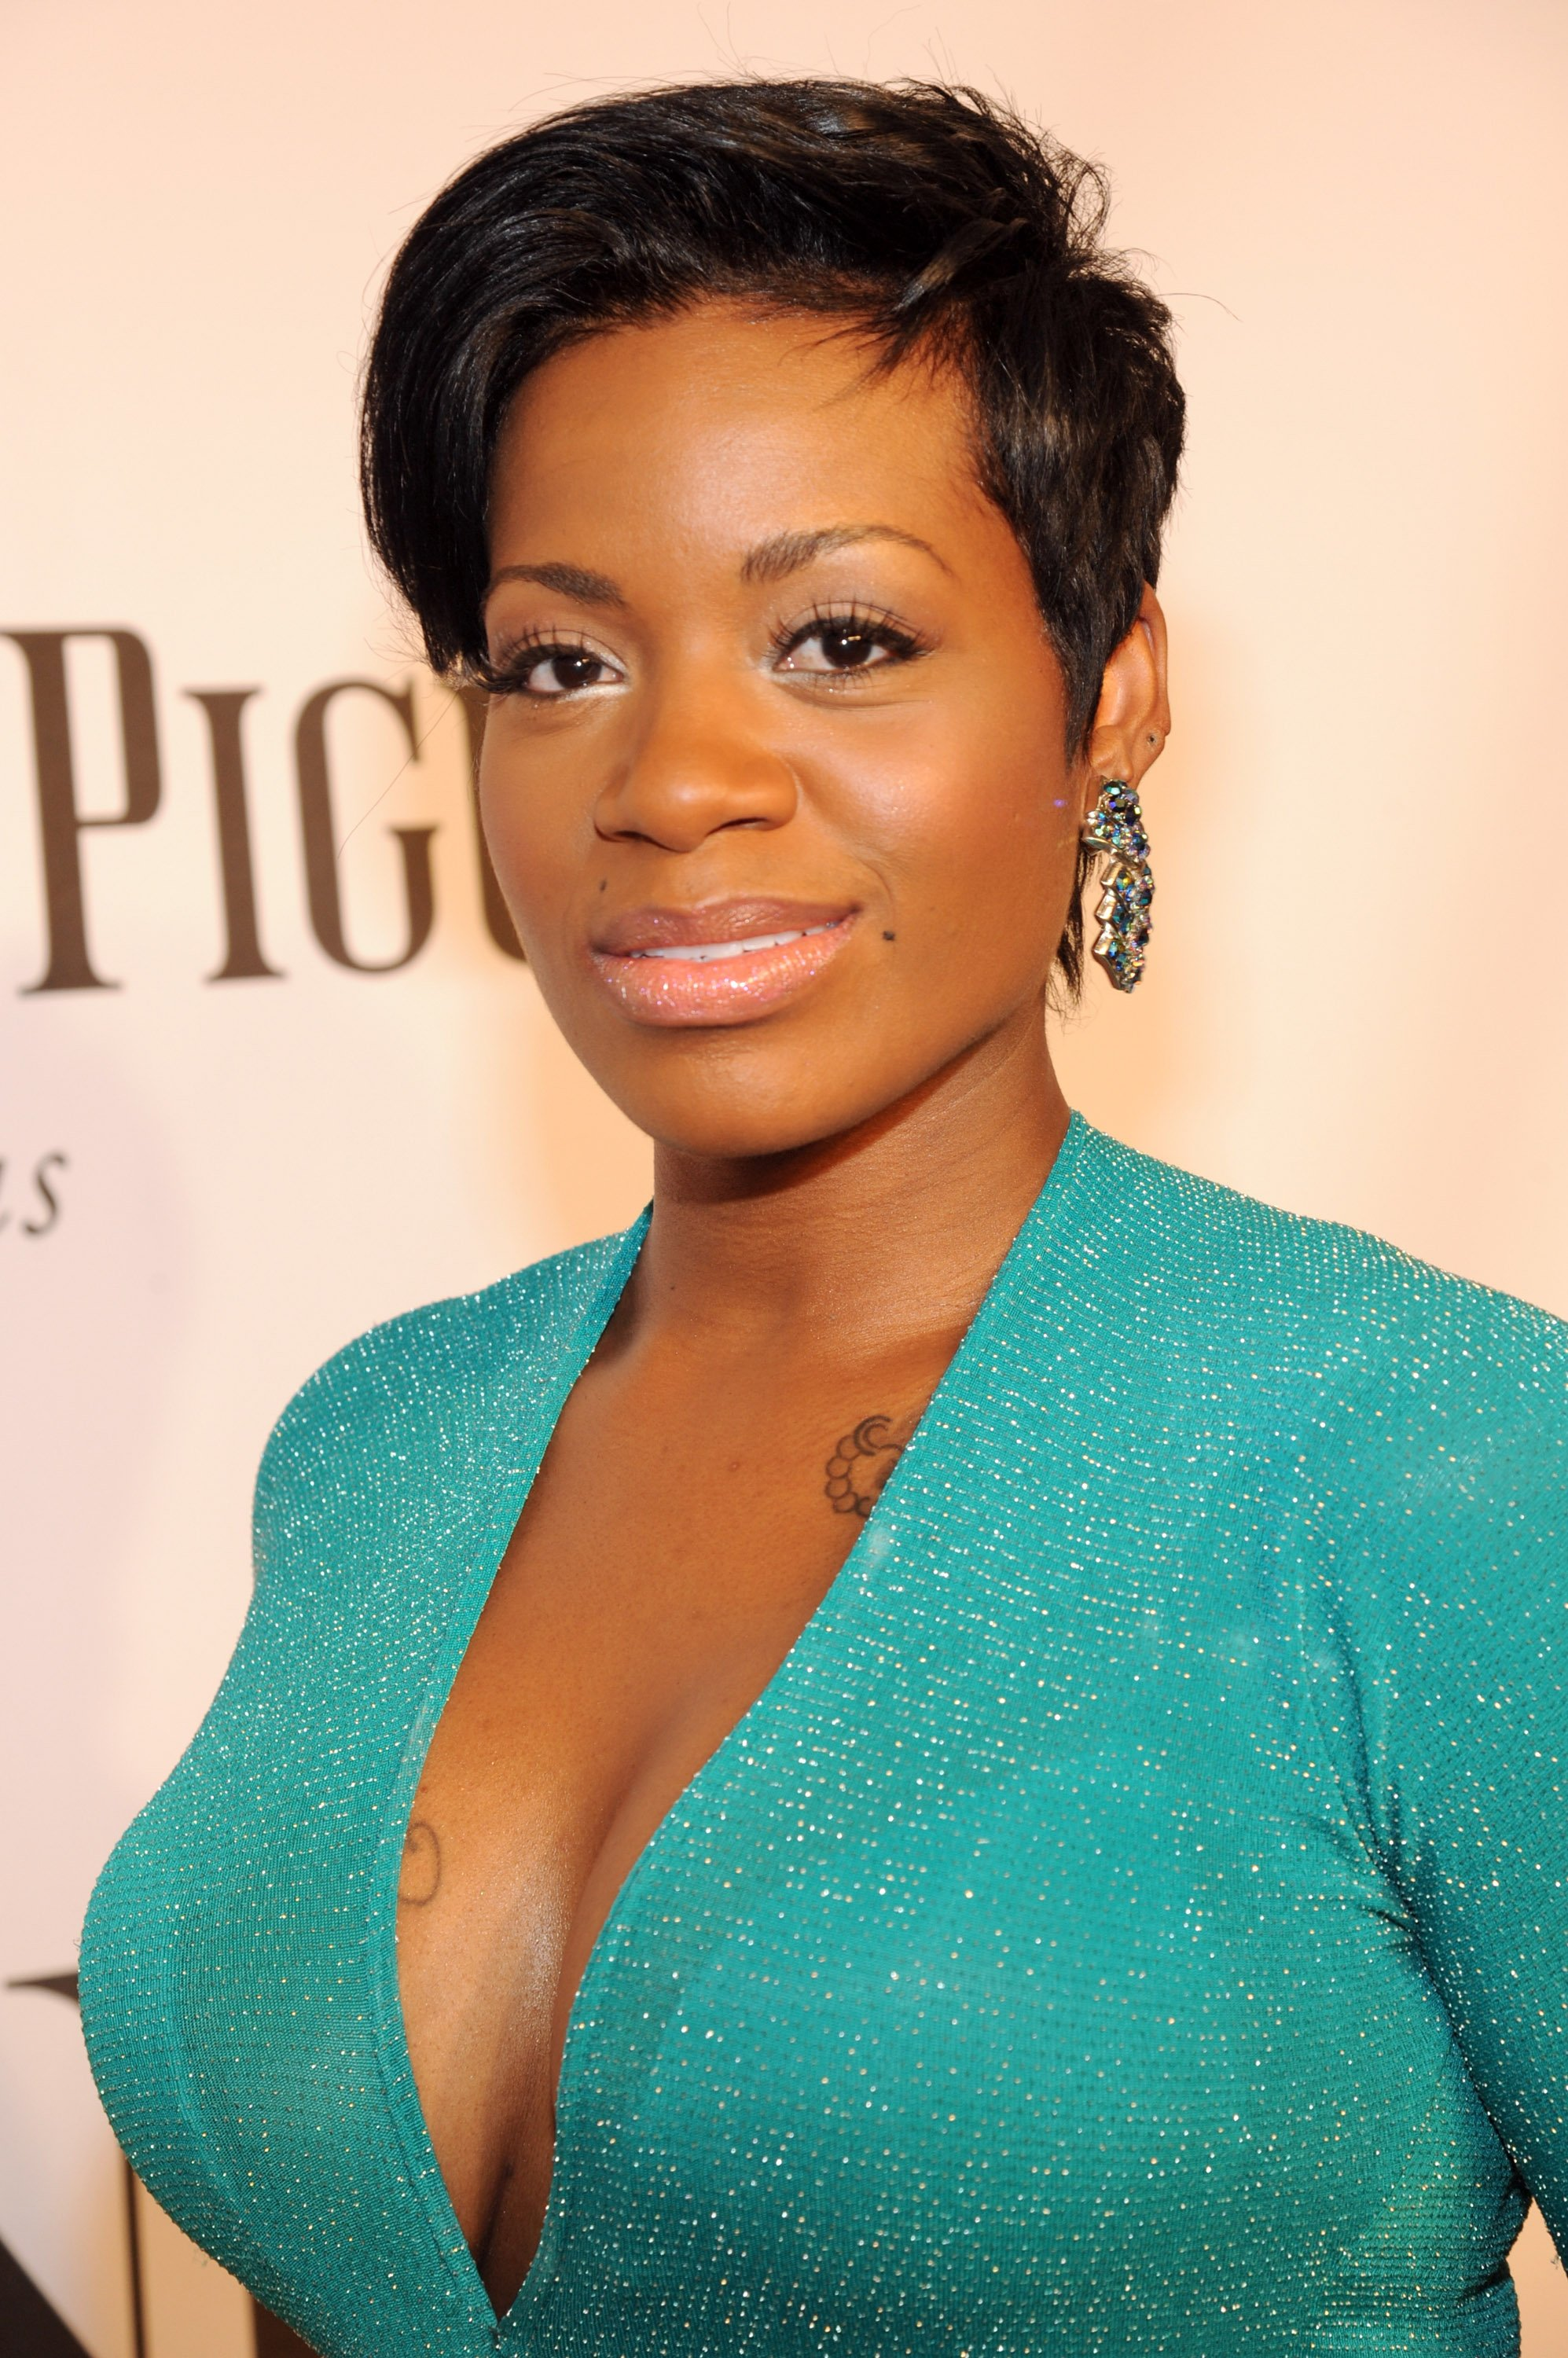 Singer Fantasia Barrino walking the red carpet at the Radio 2014 Tony Awards at the Radio City Music Hall in New York on June 8, 2014  | Photo: Getty Images